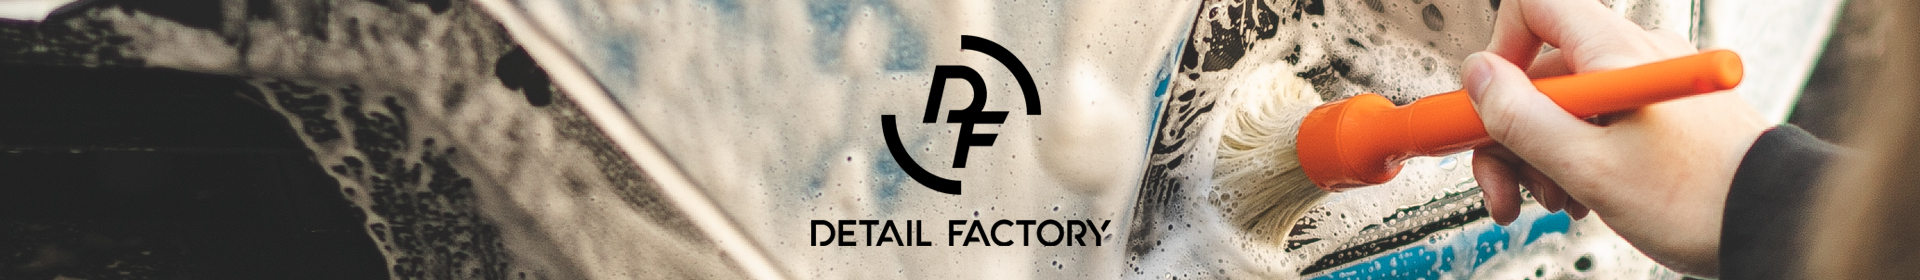 category-marketing-banner-brands-detail-factory-small.jpg